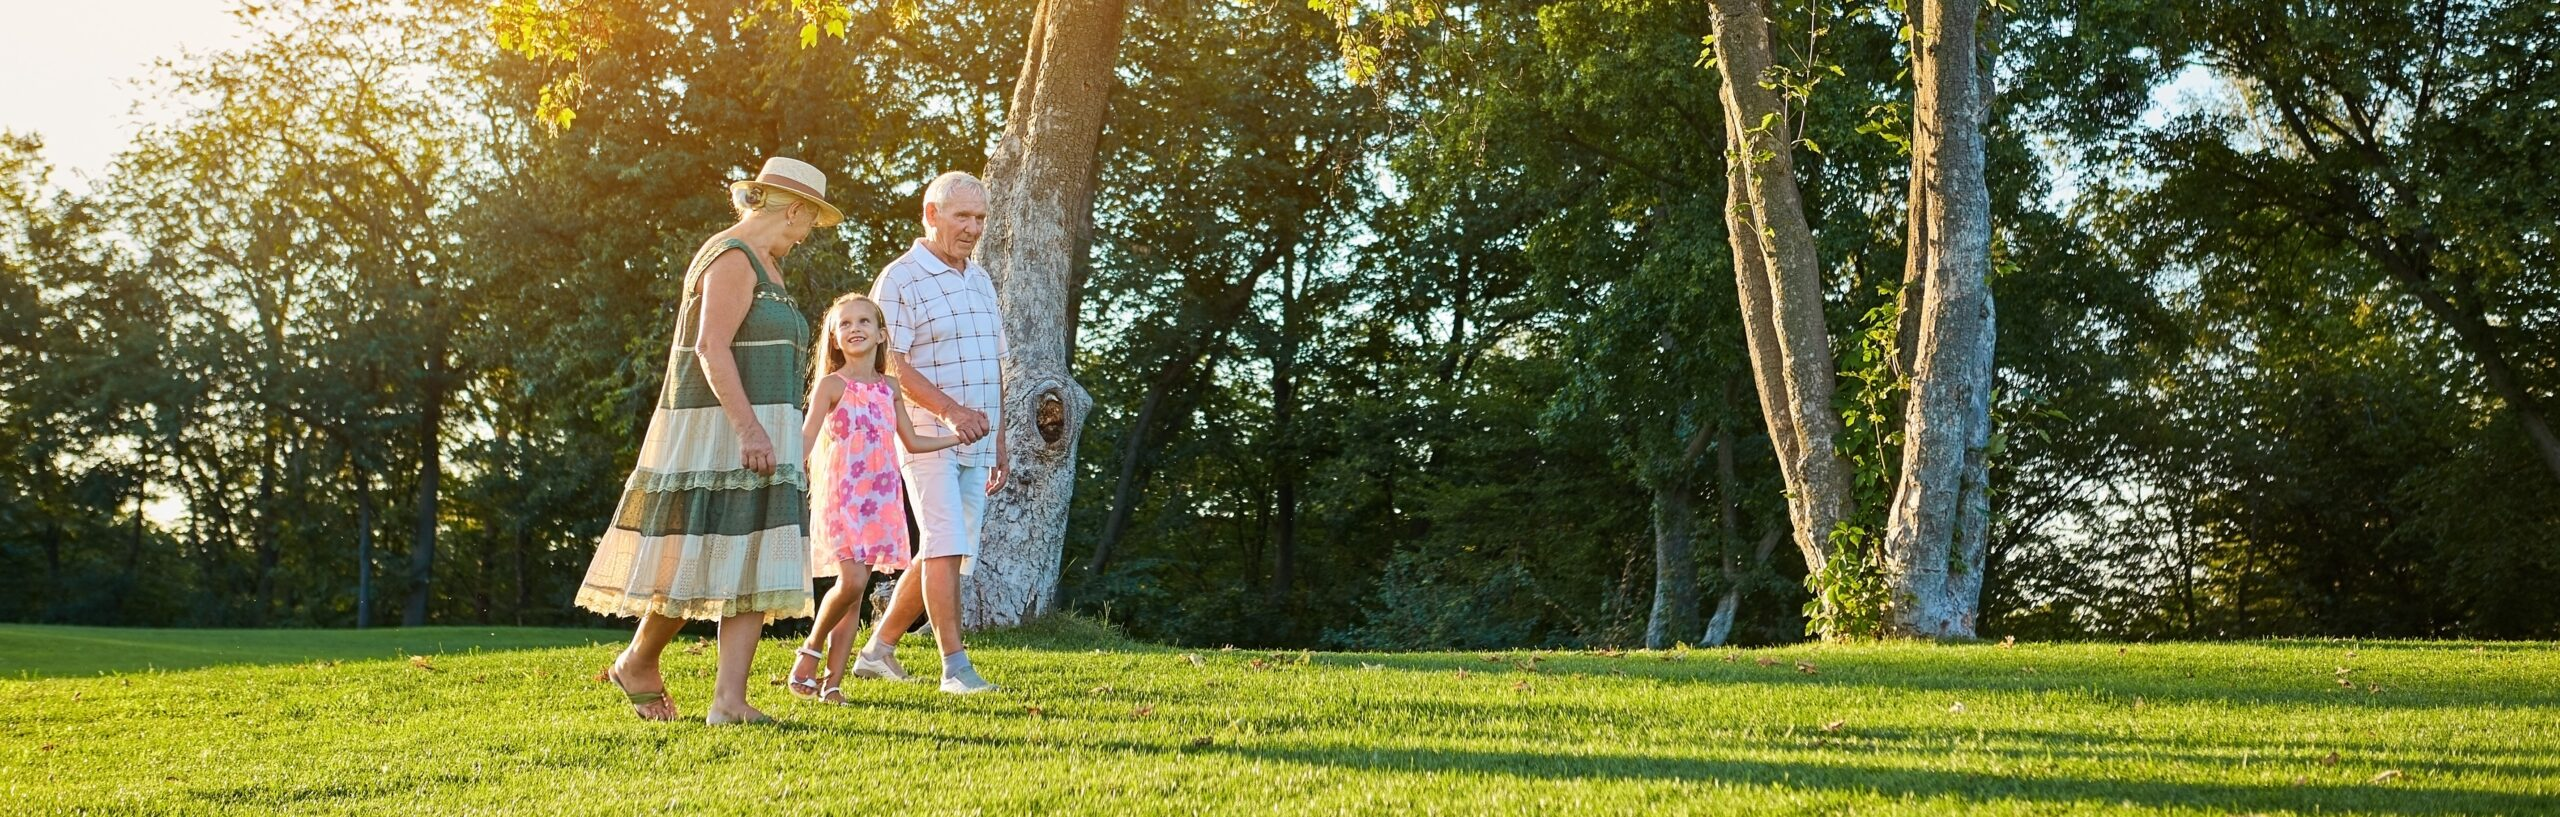 Seniors with granddaughter walking outdoors. People in summer.